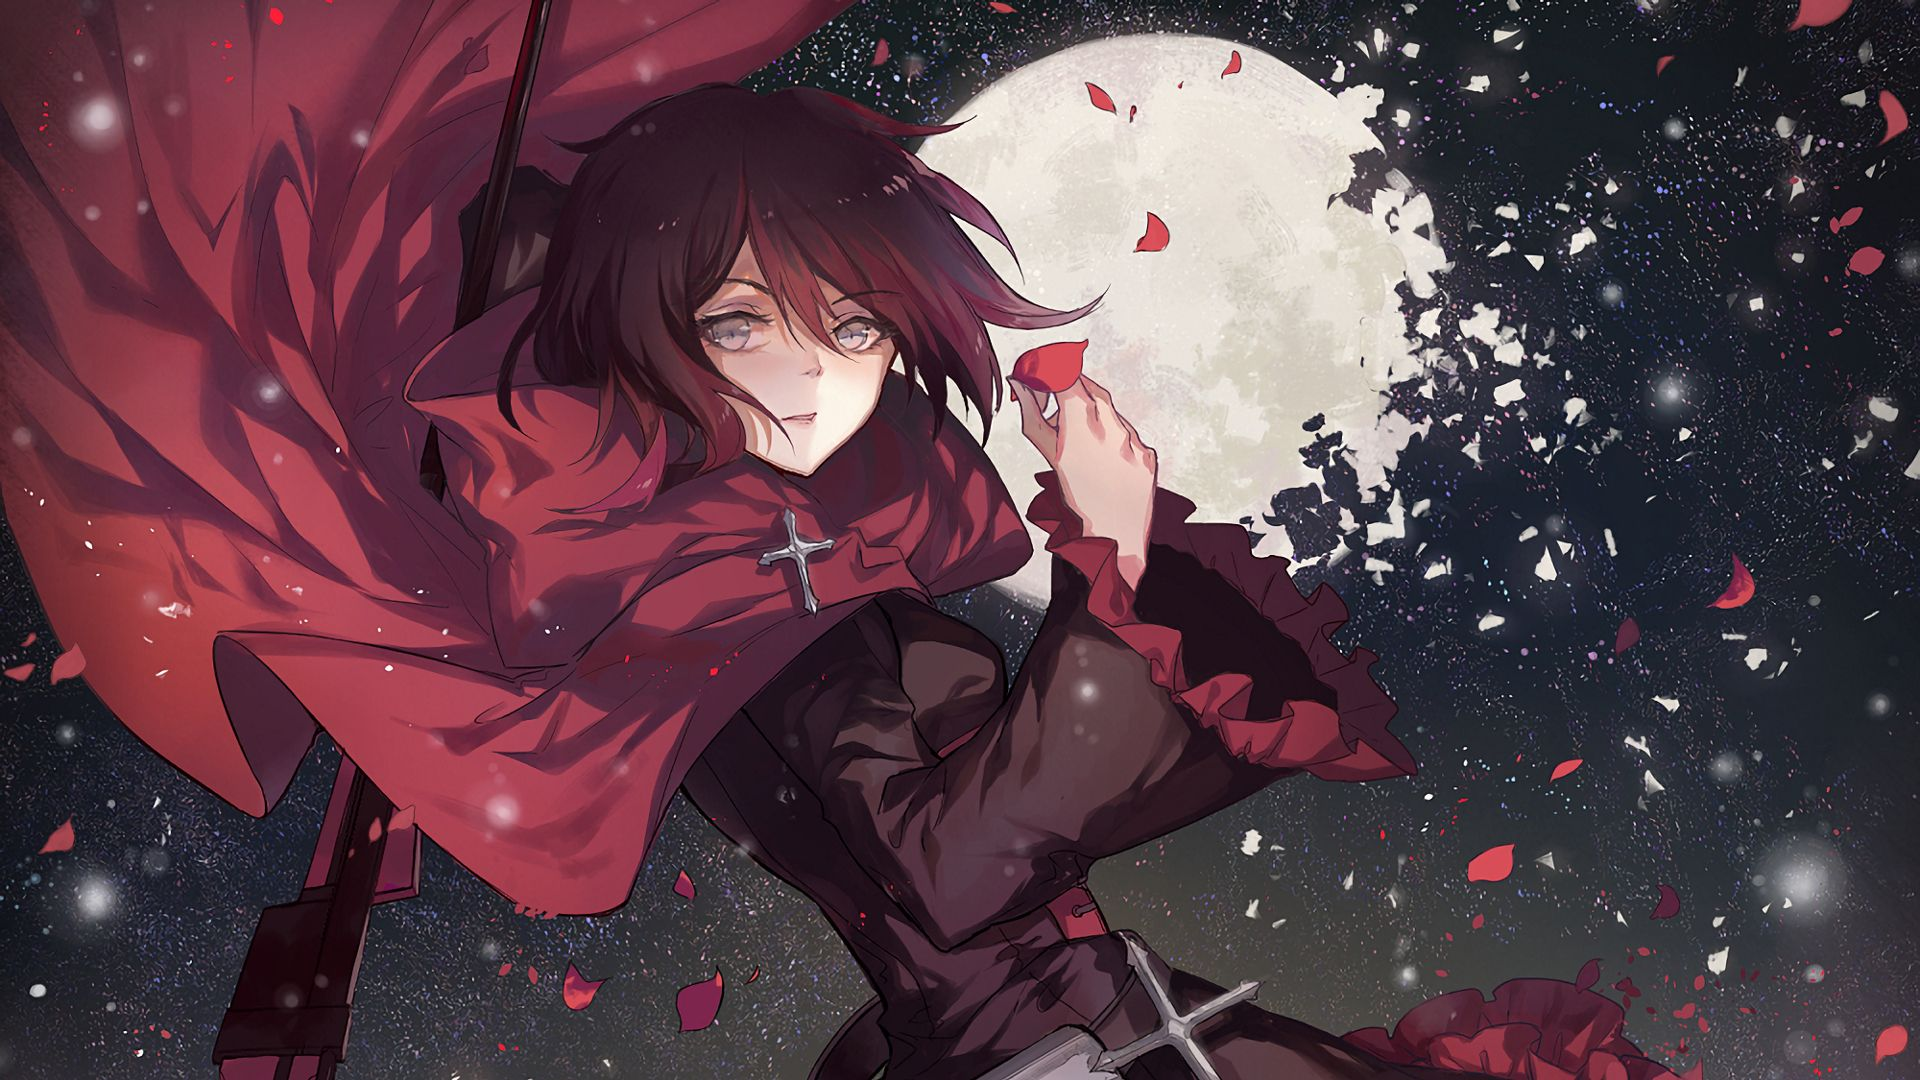 Night Of Red Computer Wallpapers Desktop Backgrounds 1920x1080 Id 649966 Rwby Anime Rwby Wallpaper Ruby Rose Anime